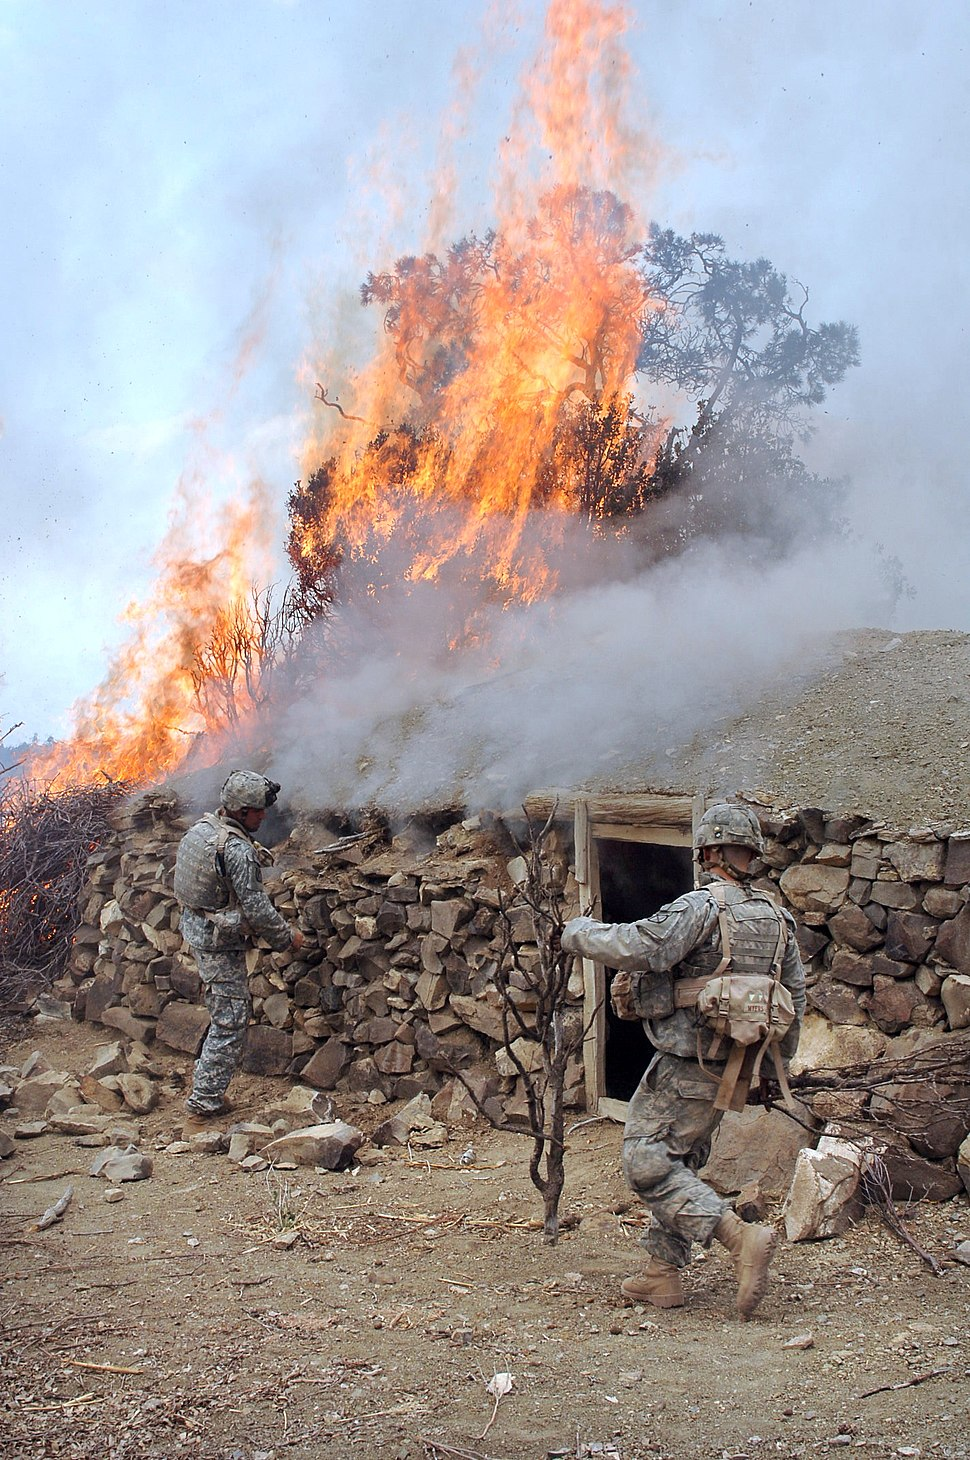 GIs burn a house described as a Taliban safehouse